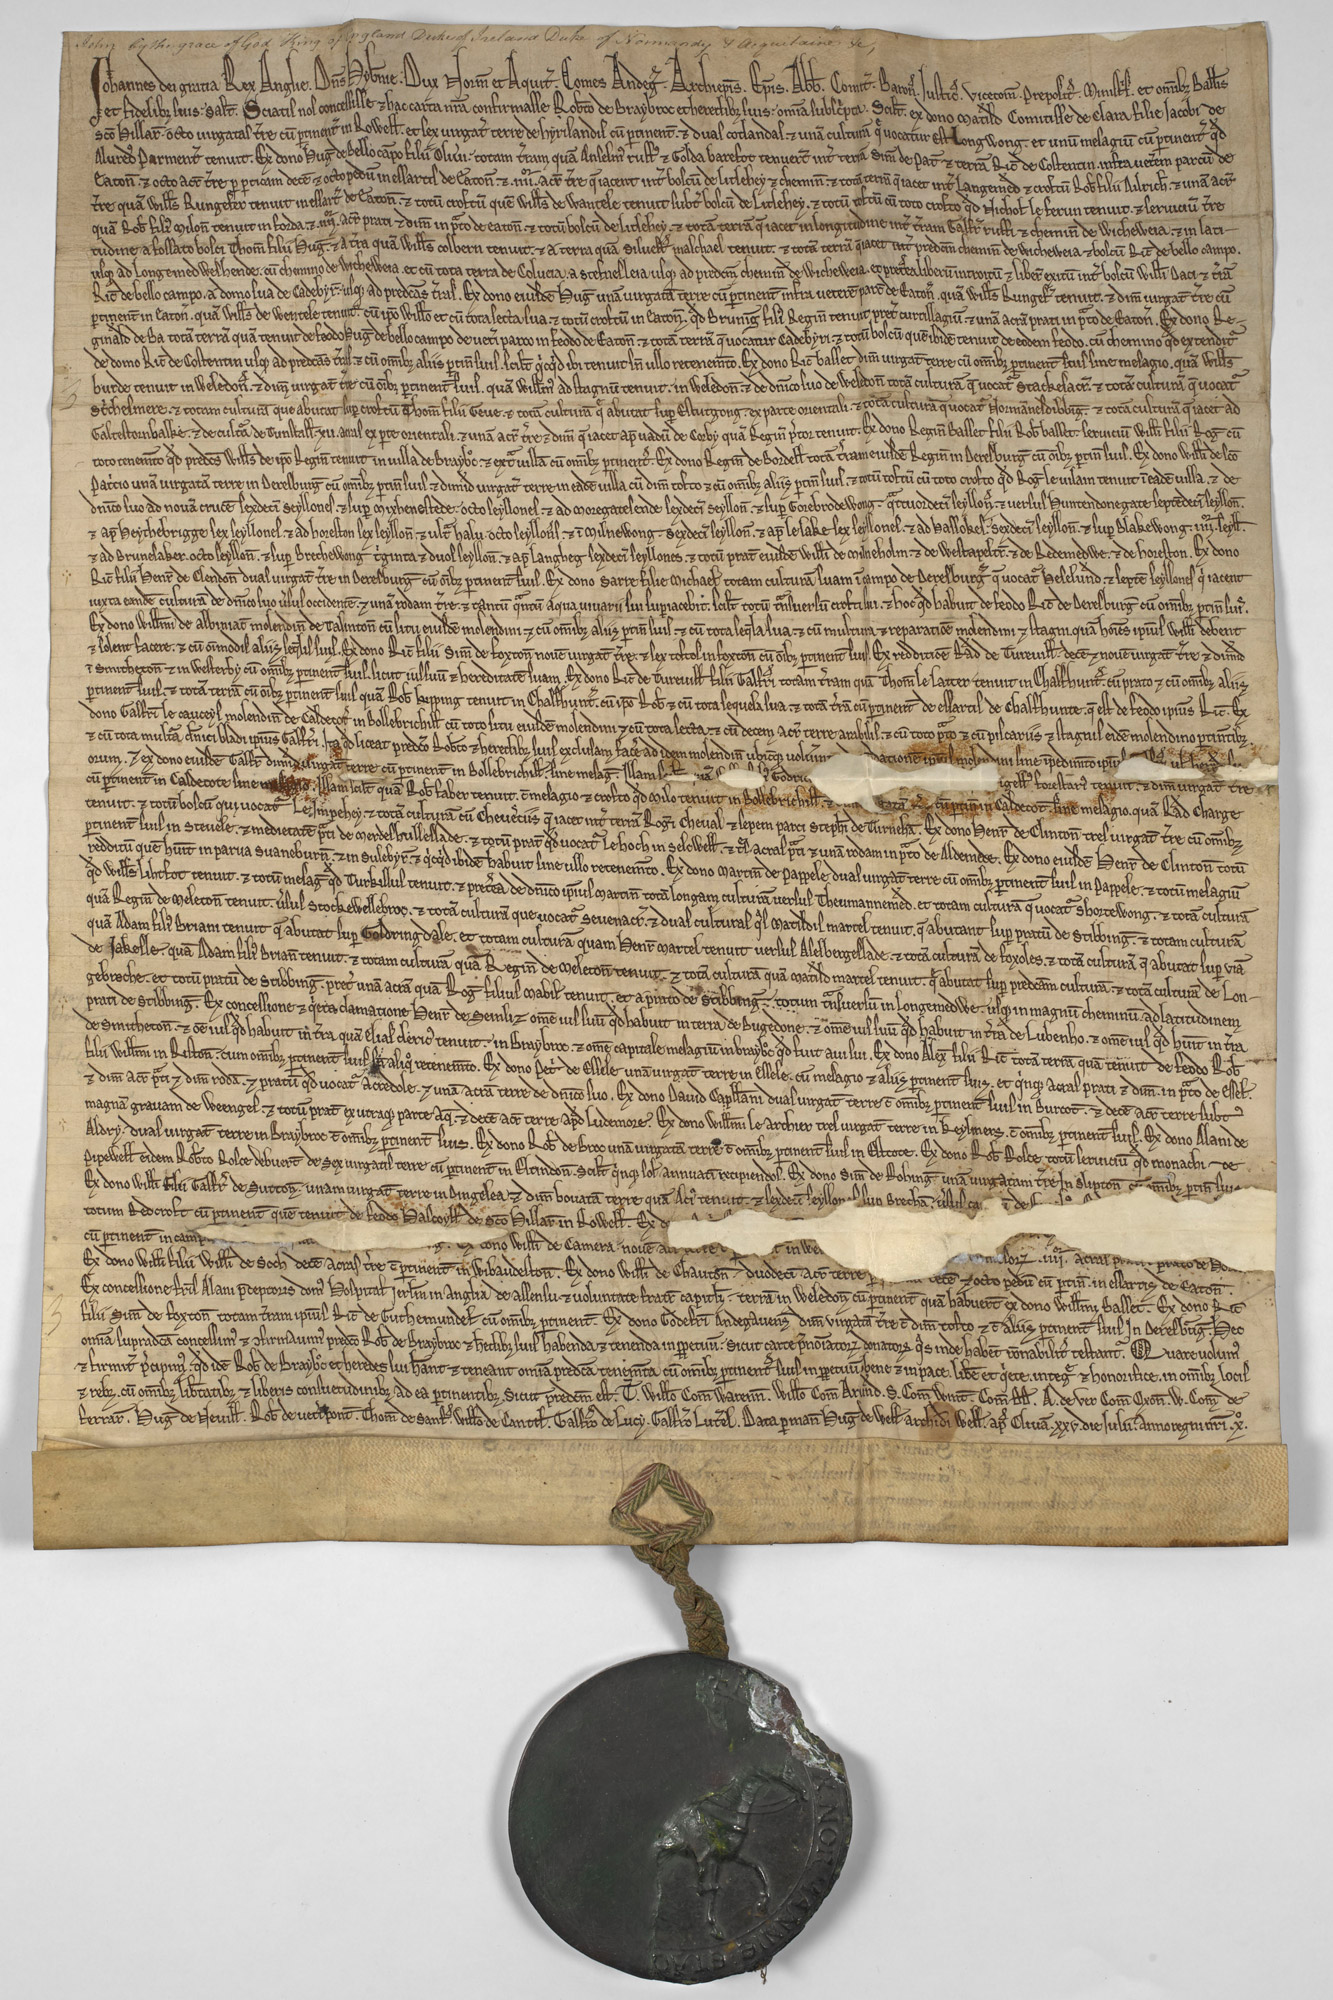 Charter of King John to Robert of Braybrooke